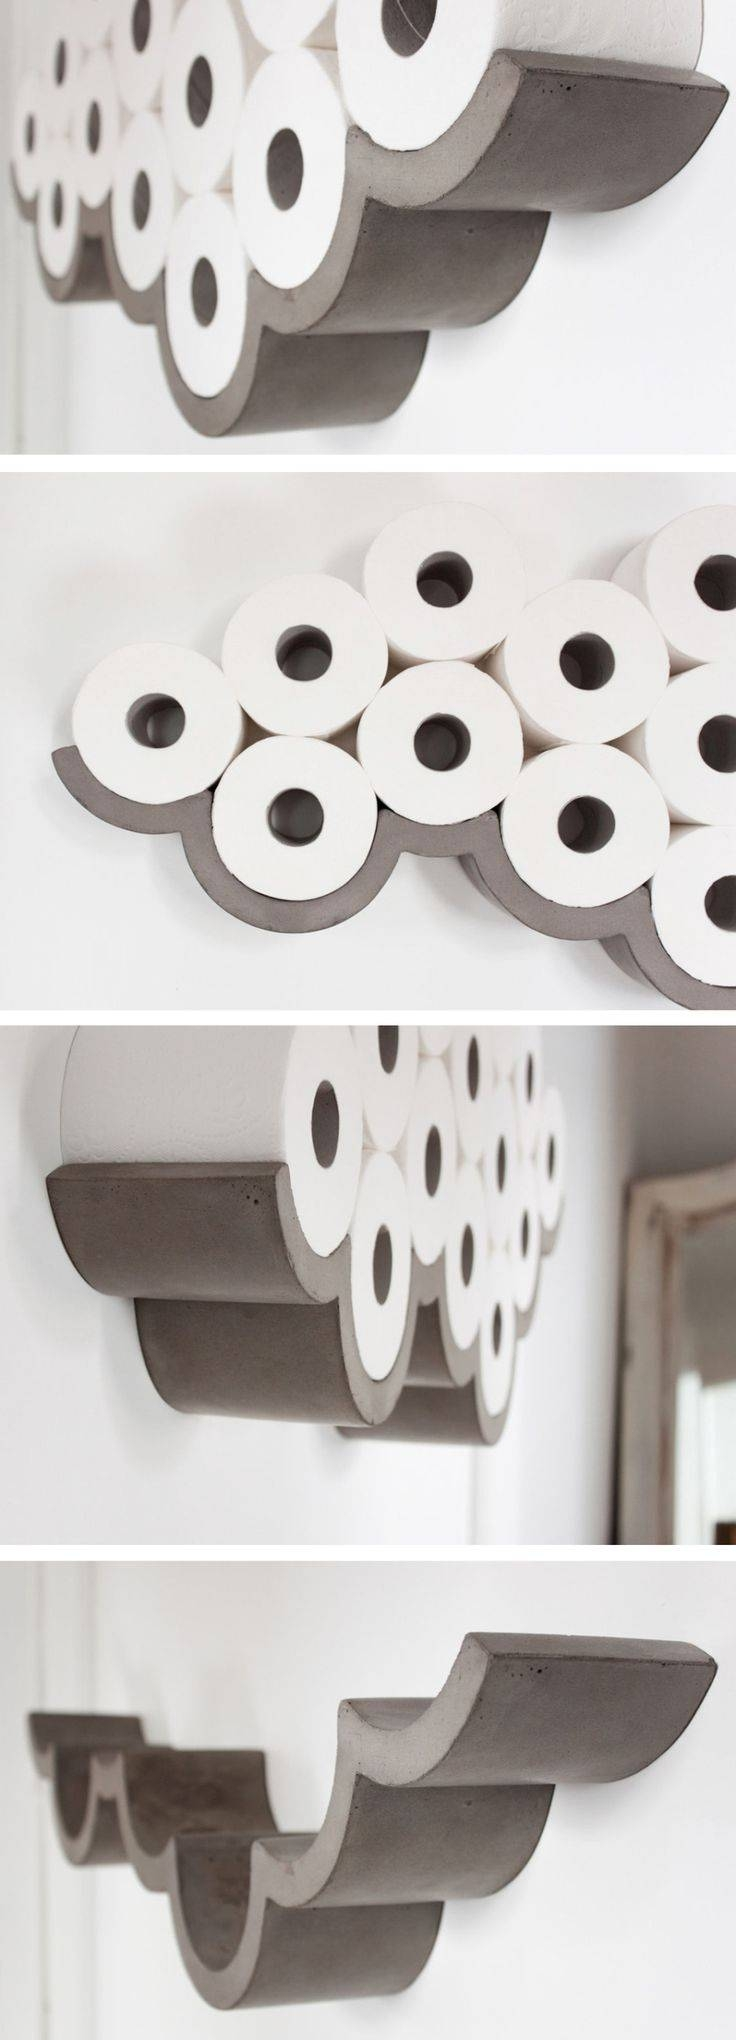 Best 25+ Toilet Paper Storage Ideas On Pinterest | Half Bathroom Regarding Recent 3D Clouds Out Of Paper Wall Art (View 16 of 25)